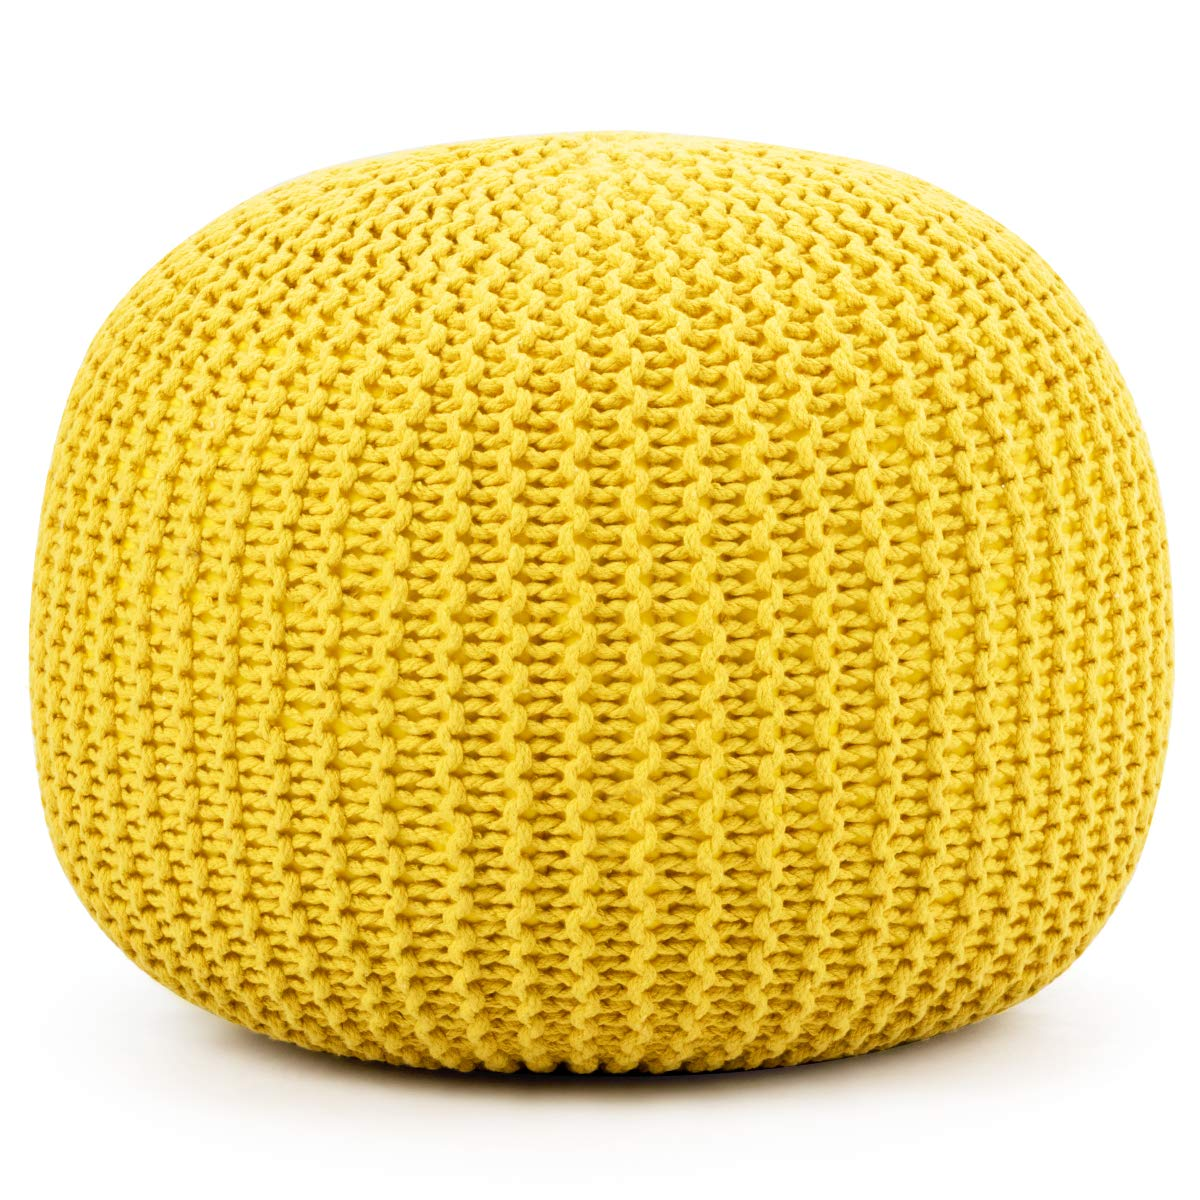 Giantex Pouf Round Knitted Hand Knitted Dori Cable W/Handmade Cotton Braid Cord, Home Decorative Seat for Guests, Ideal for Living Room, Bedroom, Kid's Room Floor Ottoman Footrest (Yellow) by Giantex